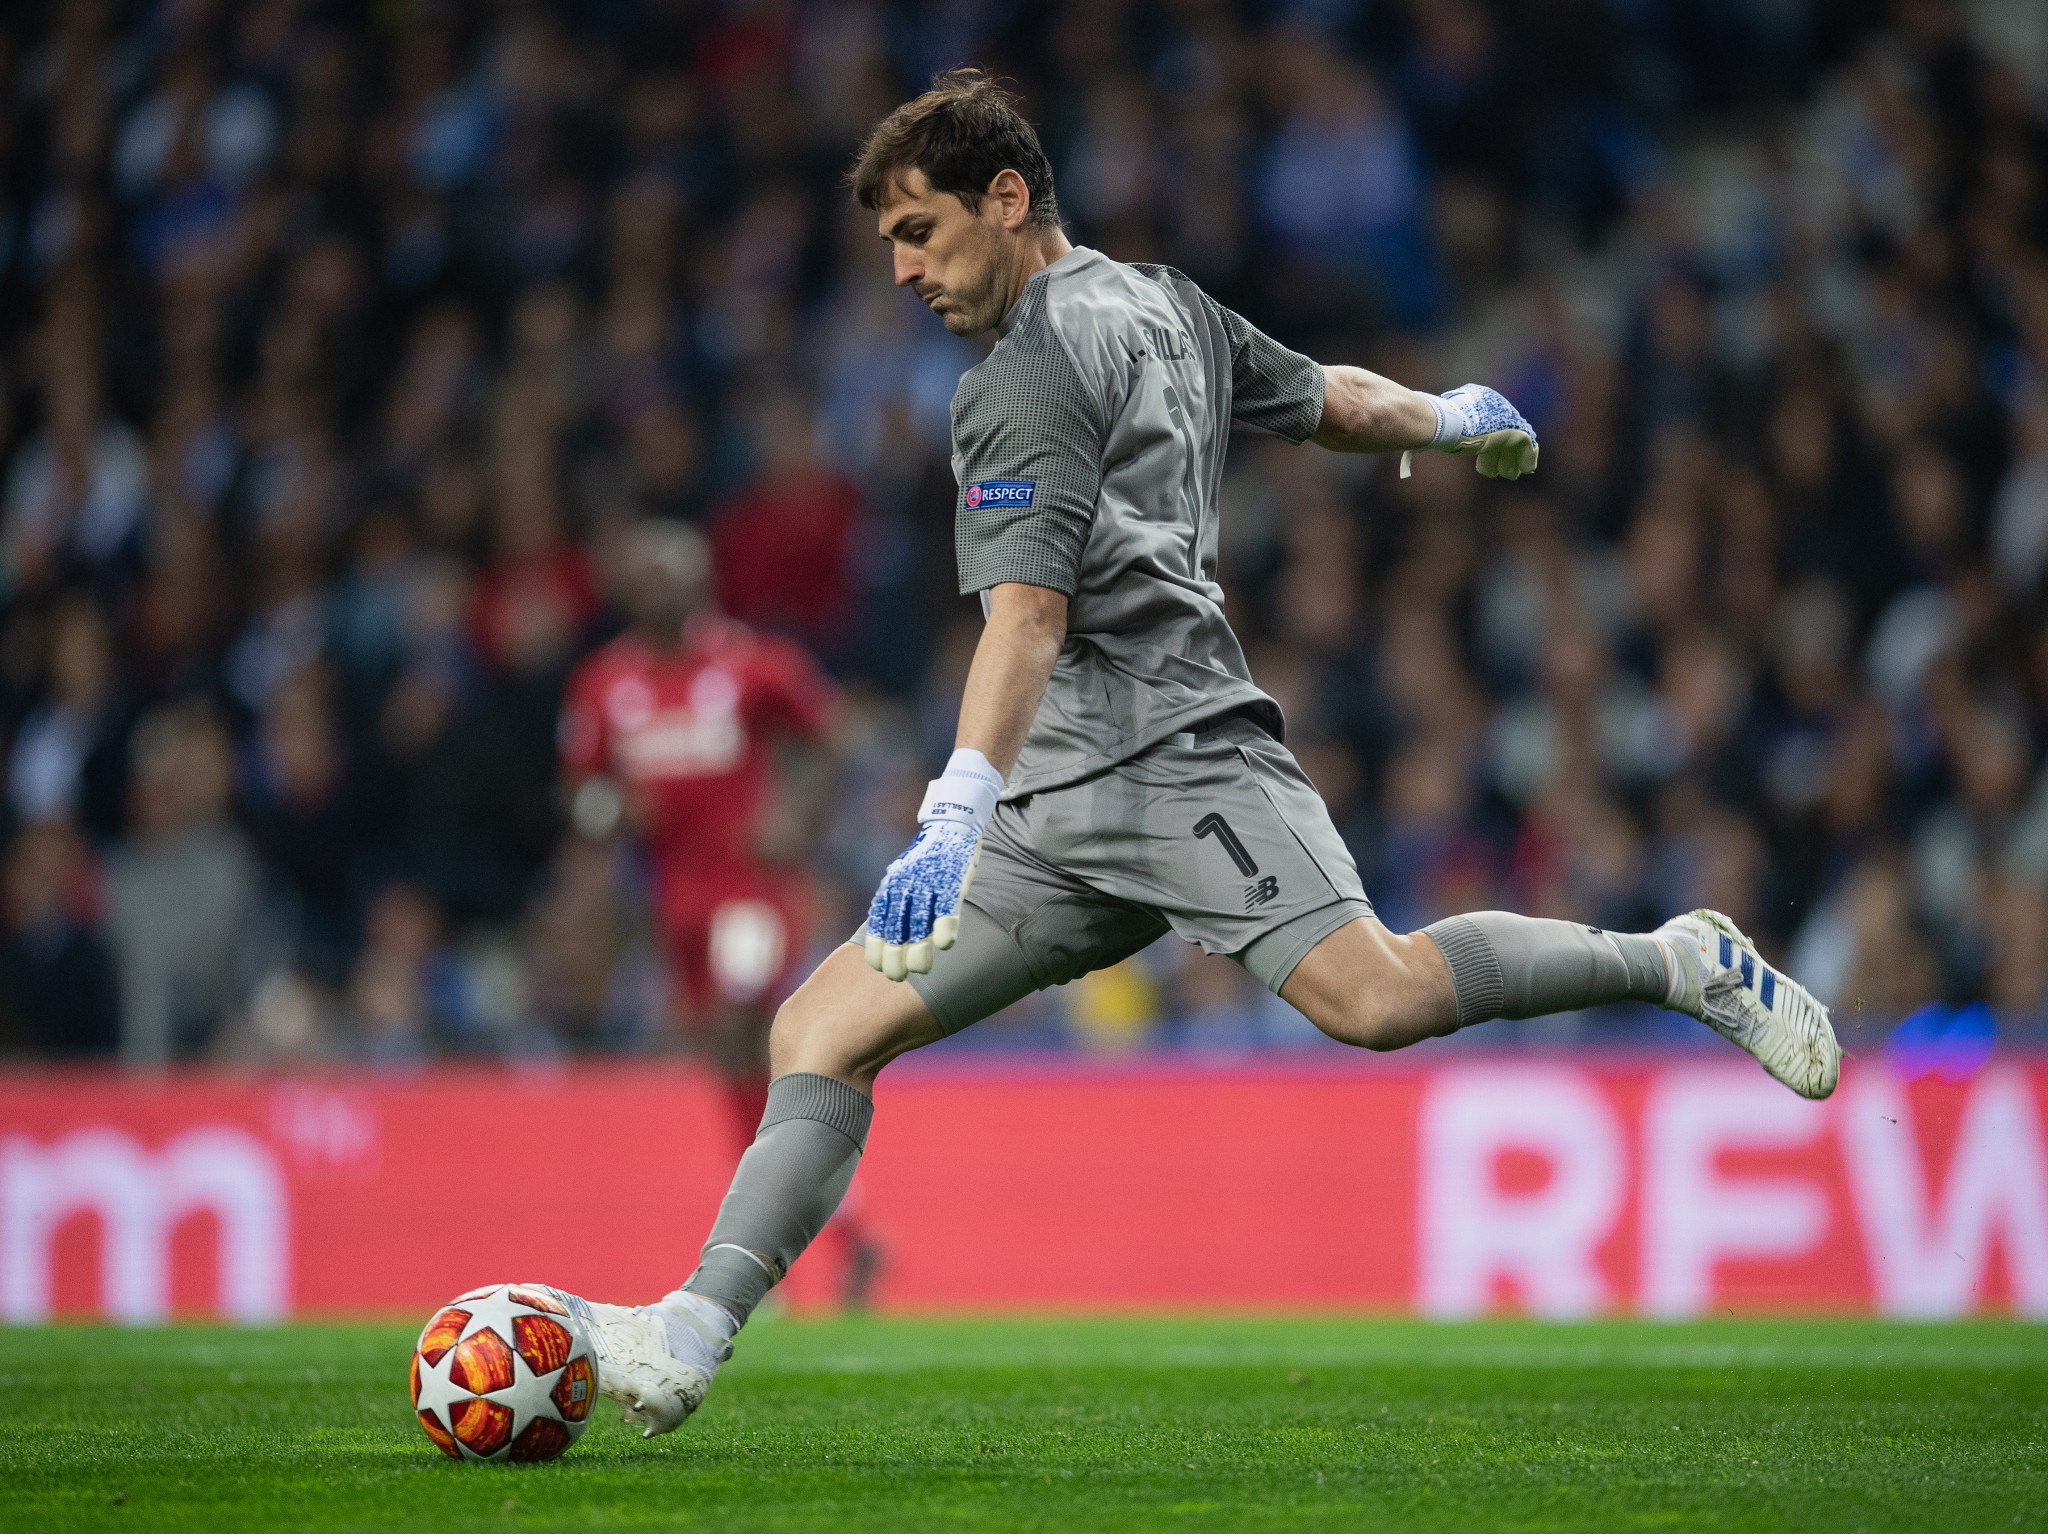 World Cup-winning goalkeeper Casillas suffers heart attack in training